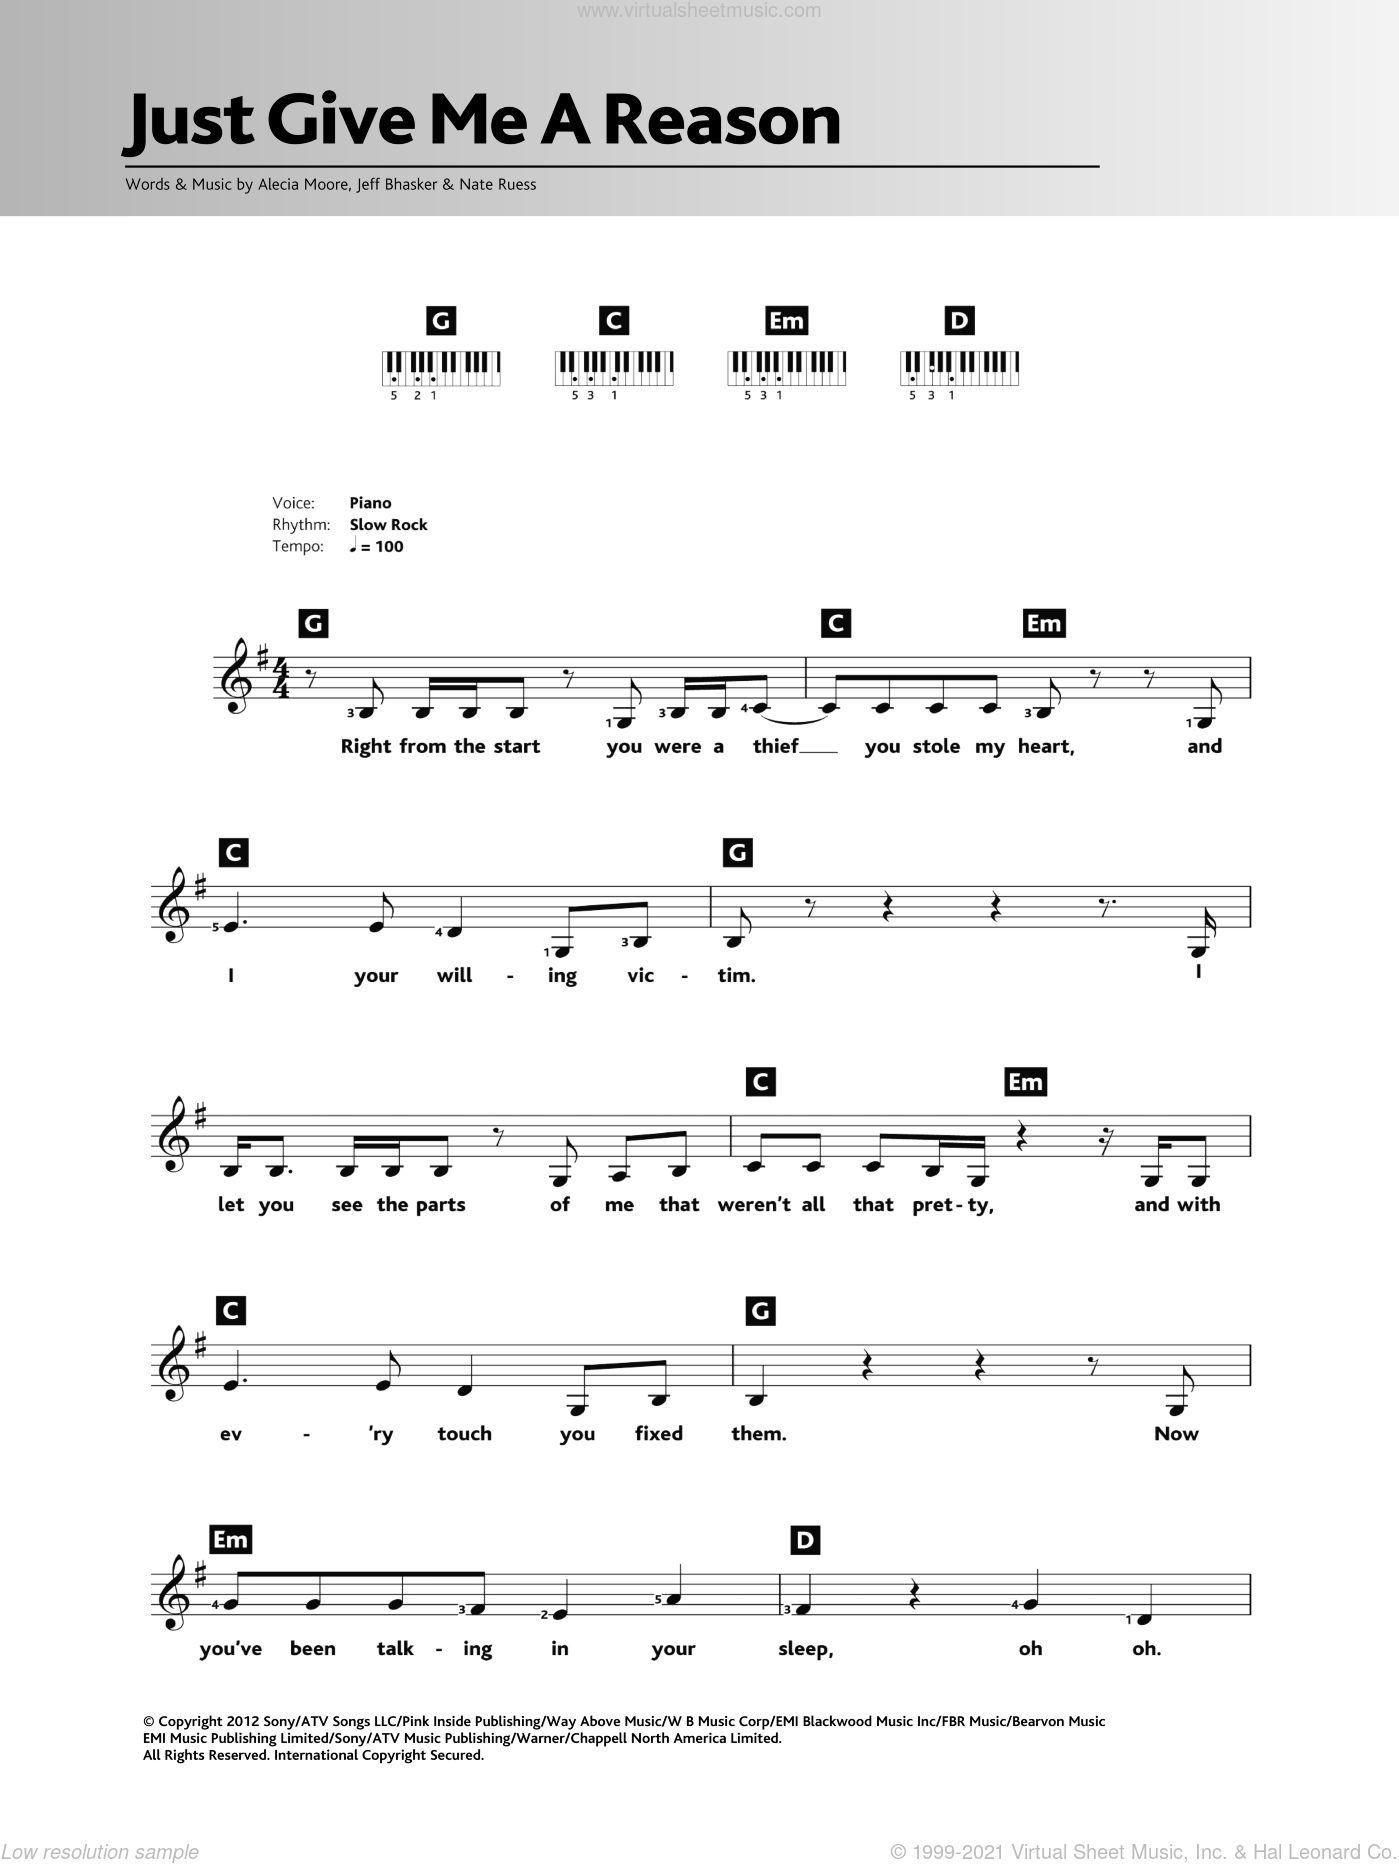 Just Give Me A Reason (featuring Nate Ruess) sheet music for piano solo (chords, lyrics, melody) by Jeff Bhasker, Miscellaneous, Alecia Moore and Nate Ruess. Score Image Preview.